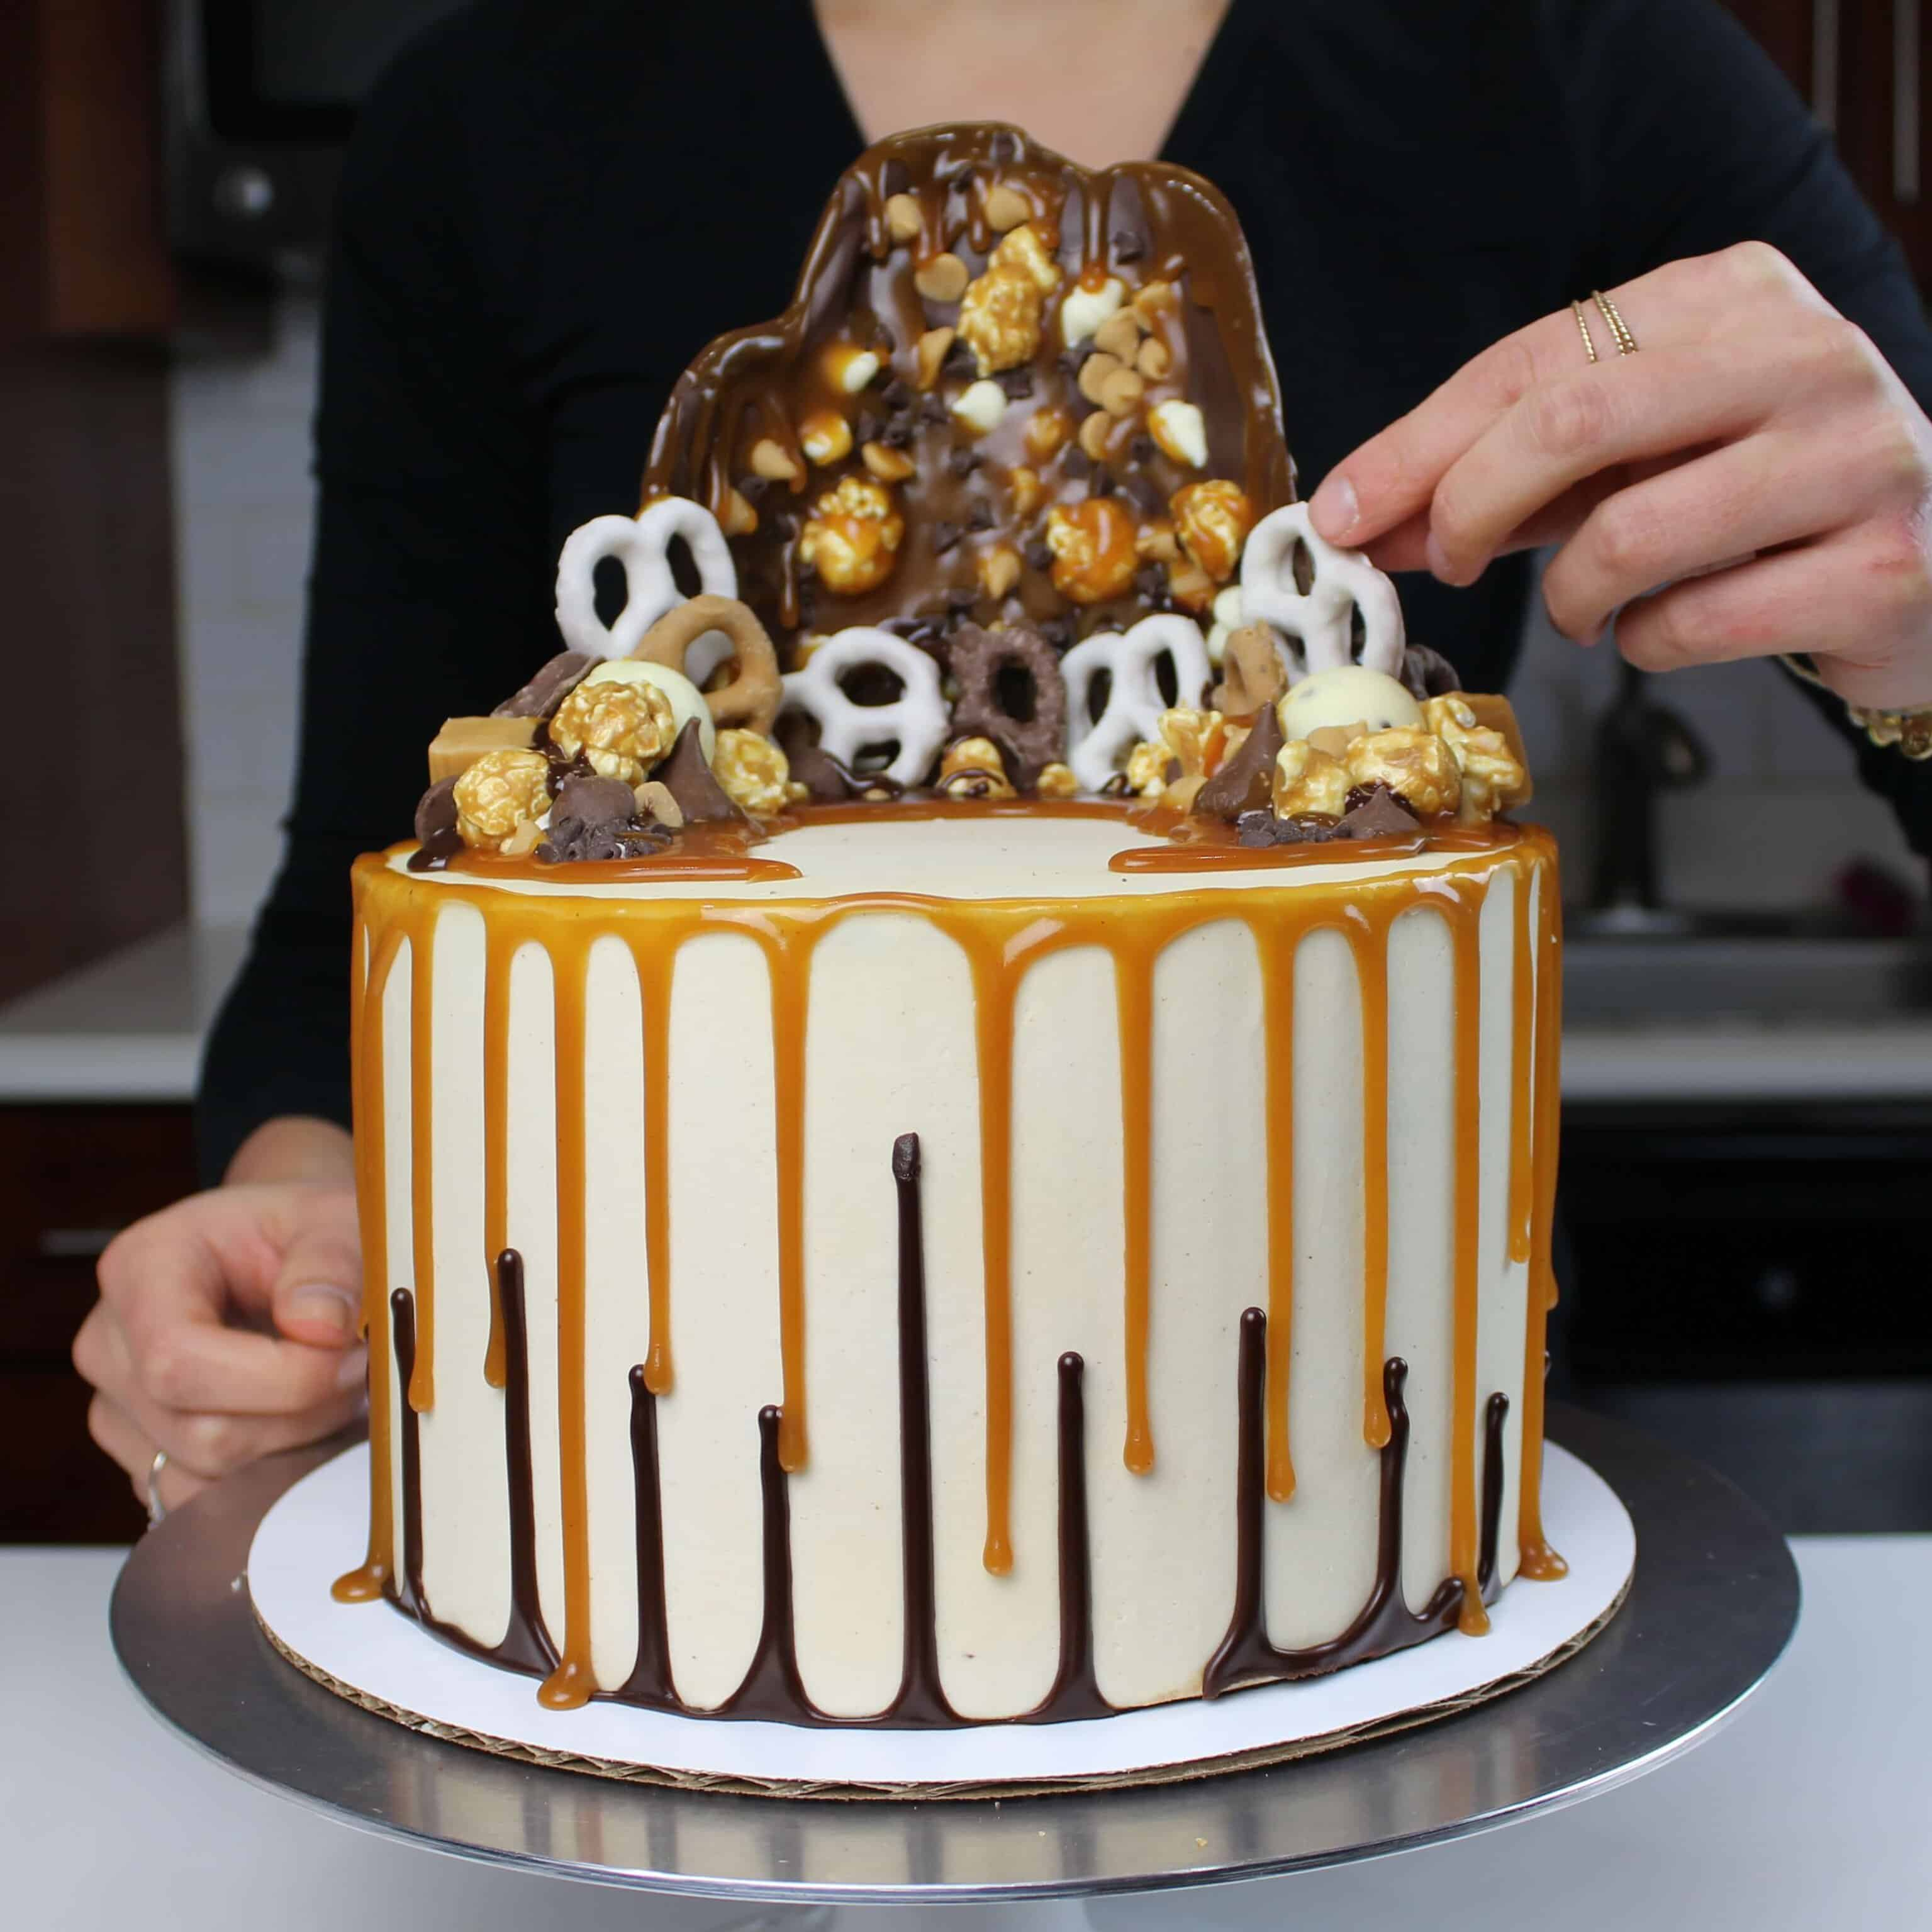 image of cake with double drip, made with chocolate ganache drips and caramel drips